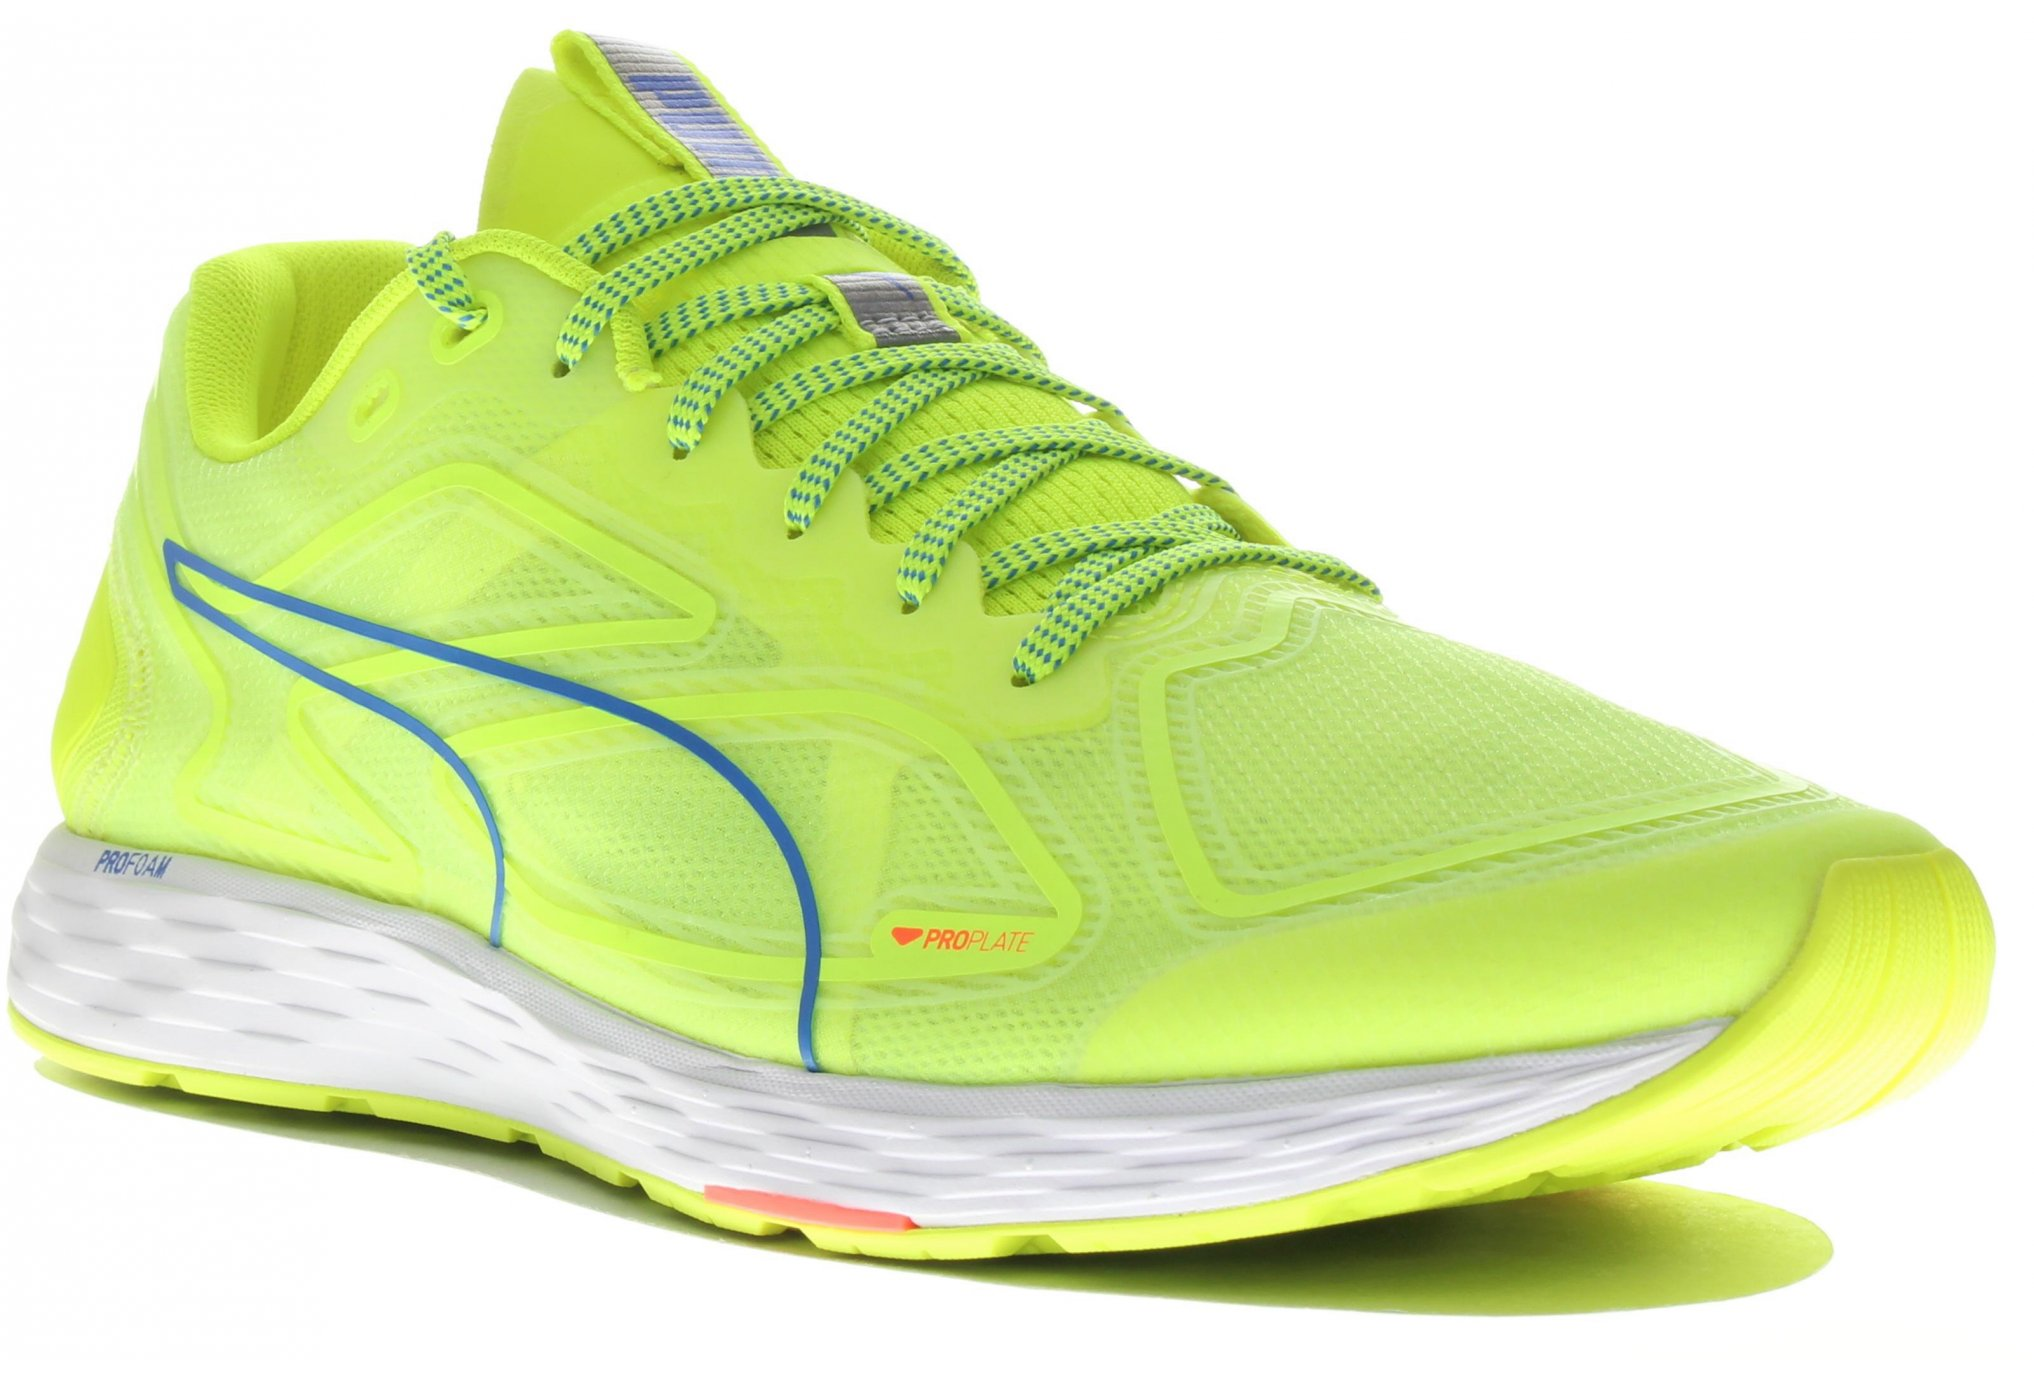 Puma Speed 300 Racer 2 M Chaussures homme